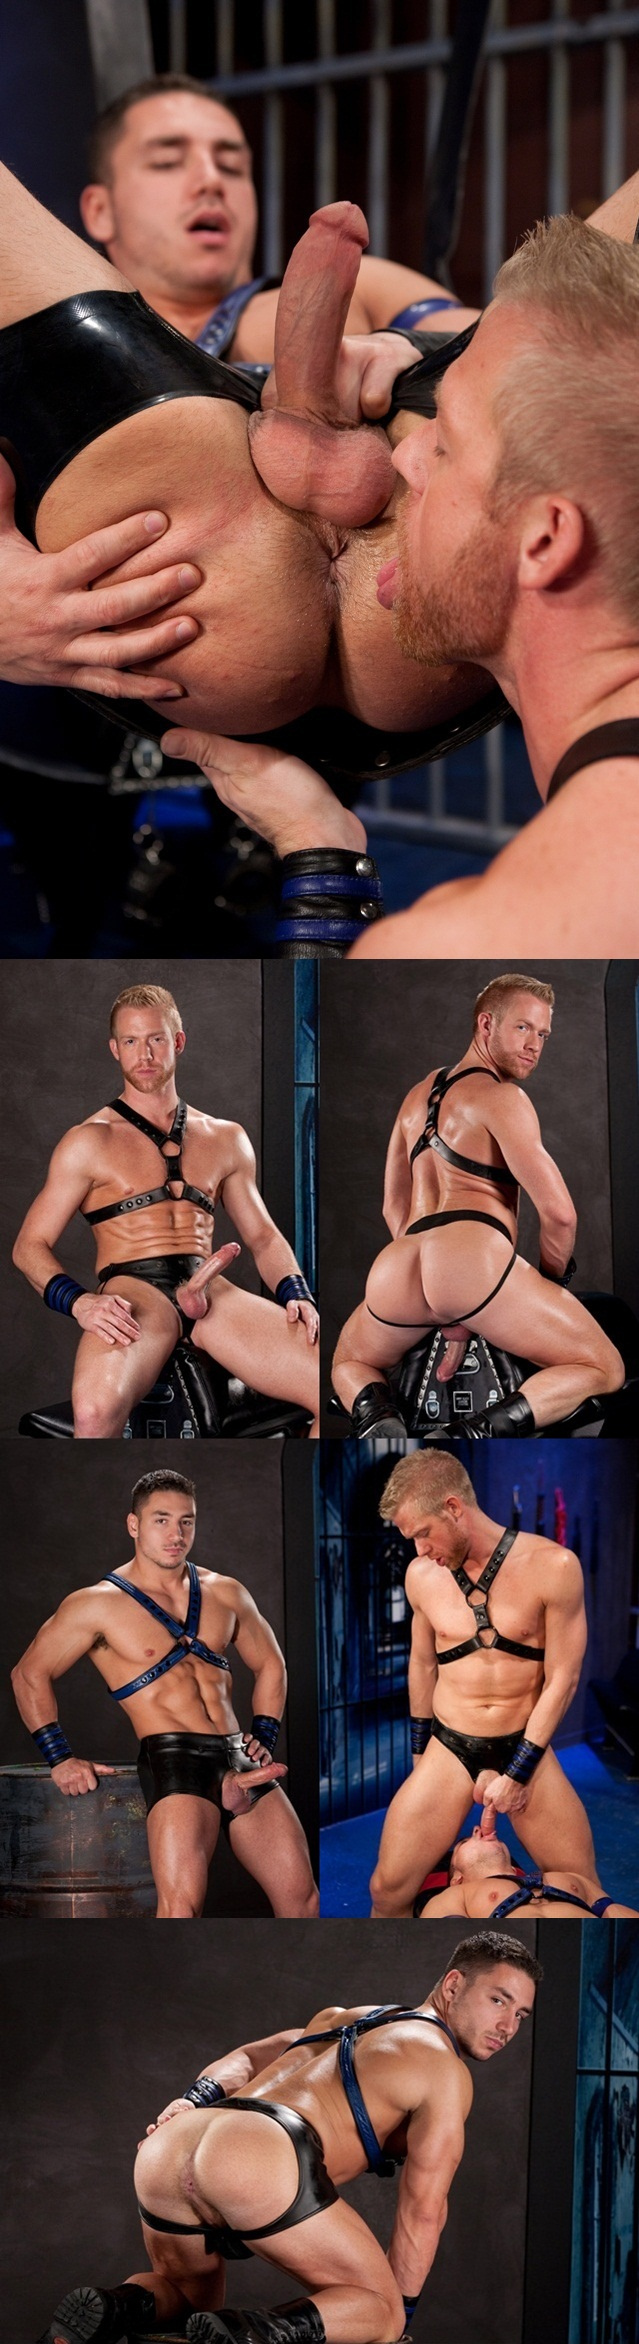 Hot cock sucker Chris Daniels services hungry bottom Marc Dylan tight ass in a sling 1 Download Full Gay Porn Gallery here